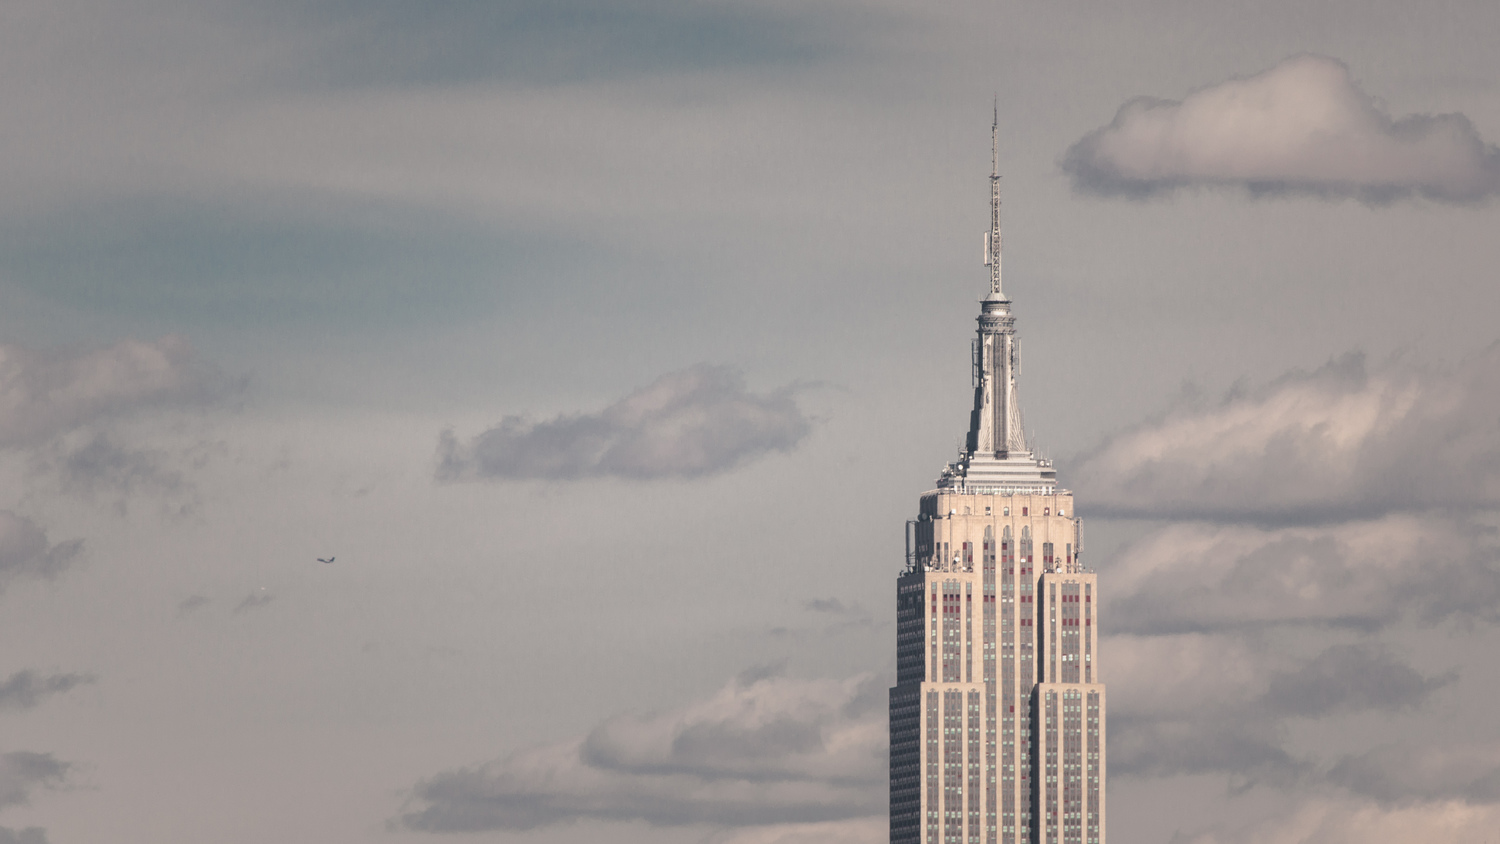 The Empire State Building Stands Alone